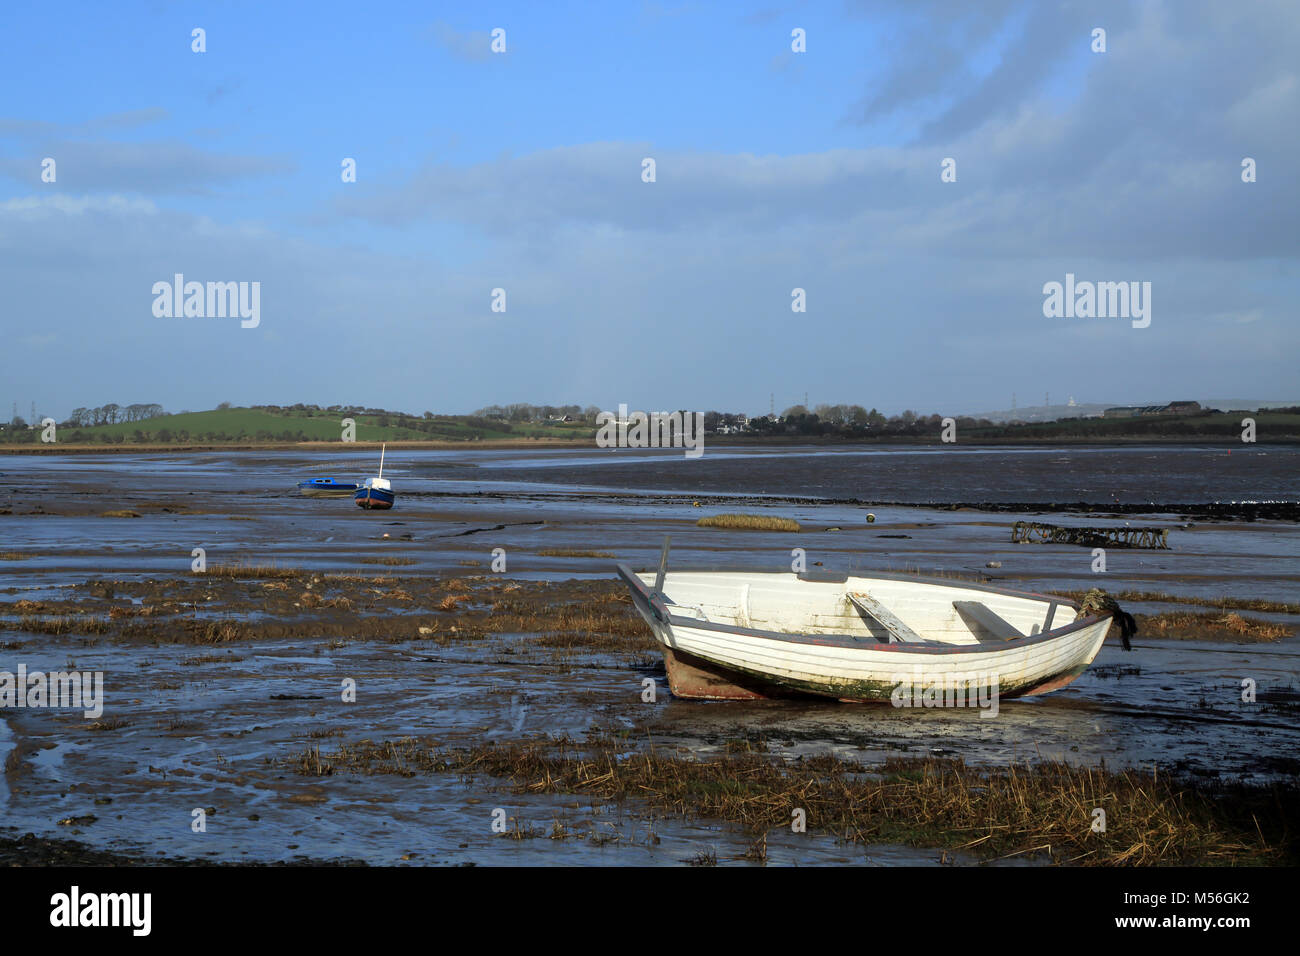 View from Sunderland Point at low tide over the River Lune, Morecambe, Lancashire, United Kingdom Stock Photo